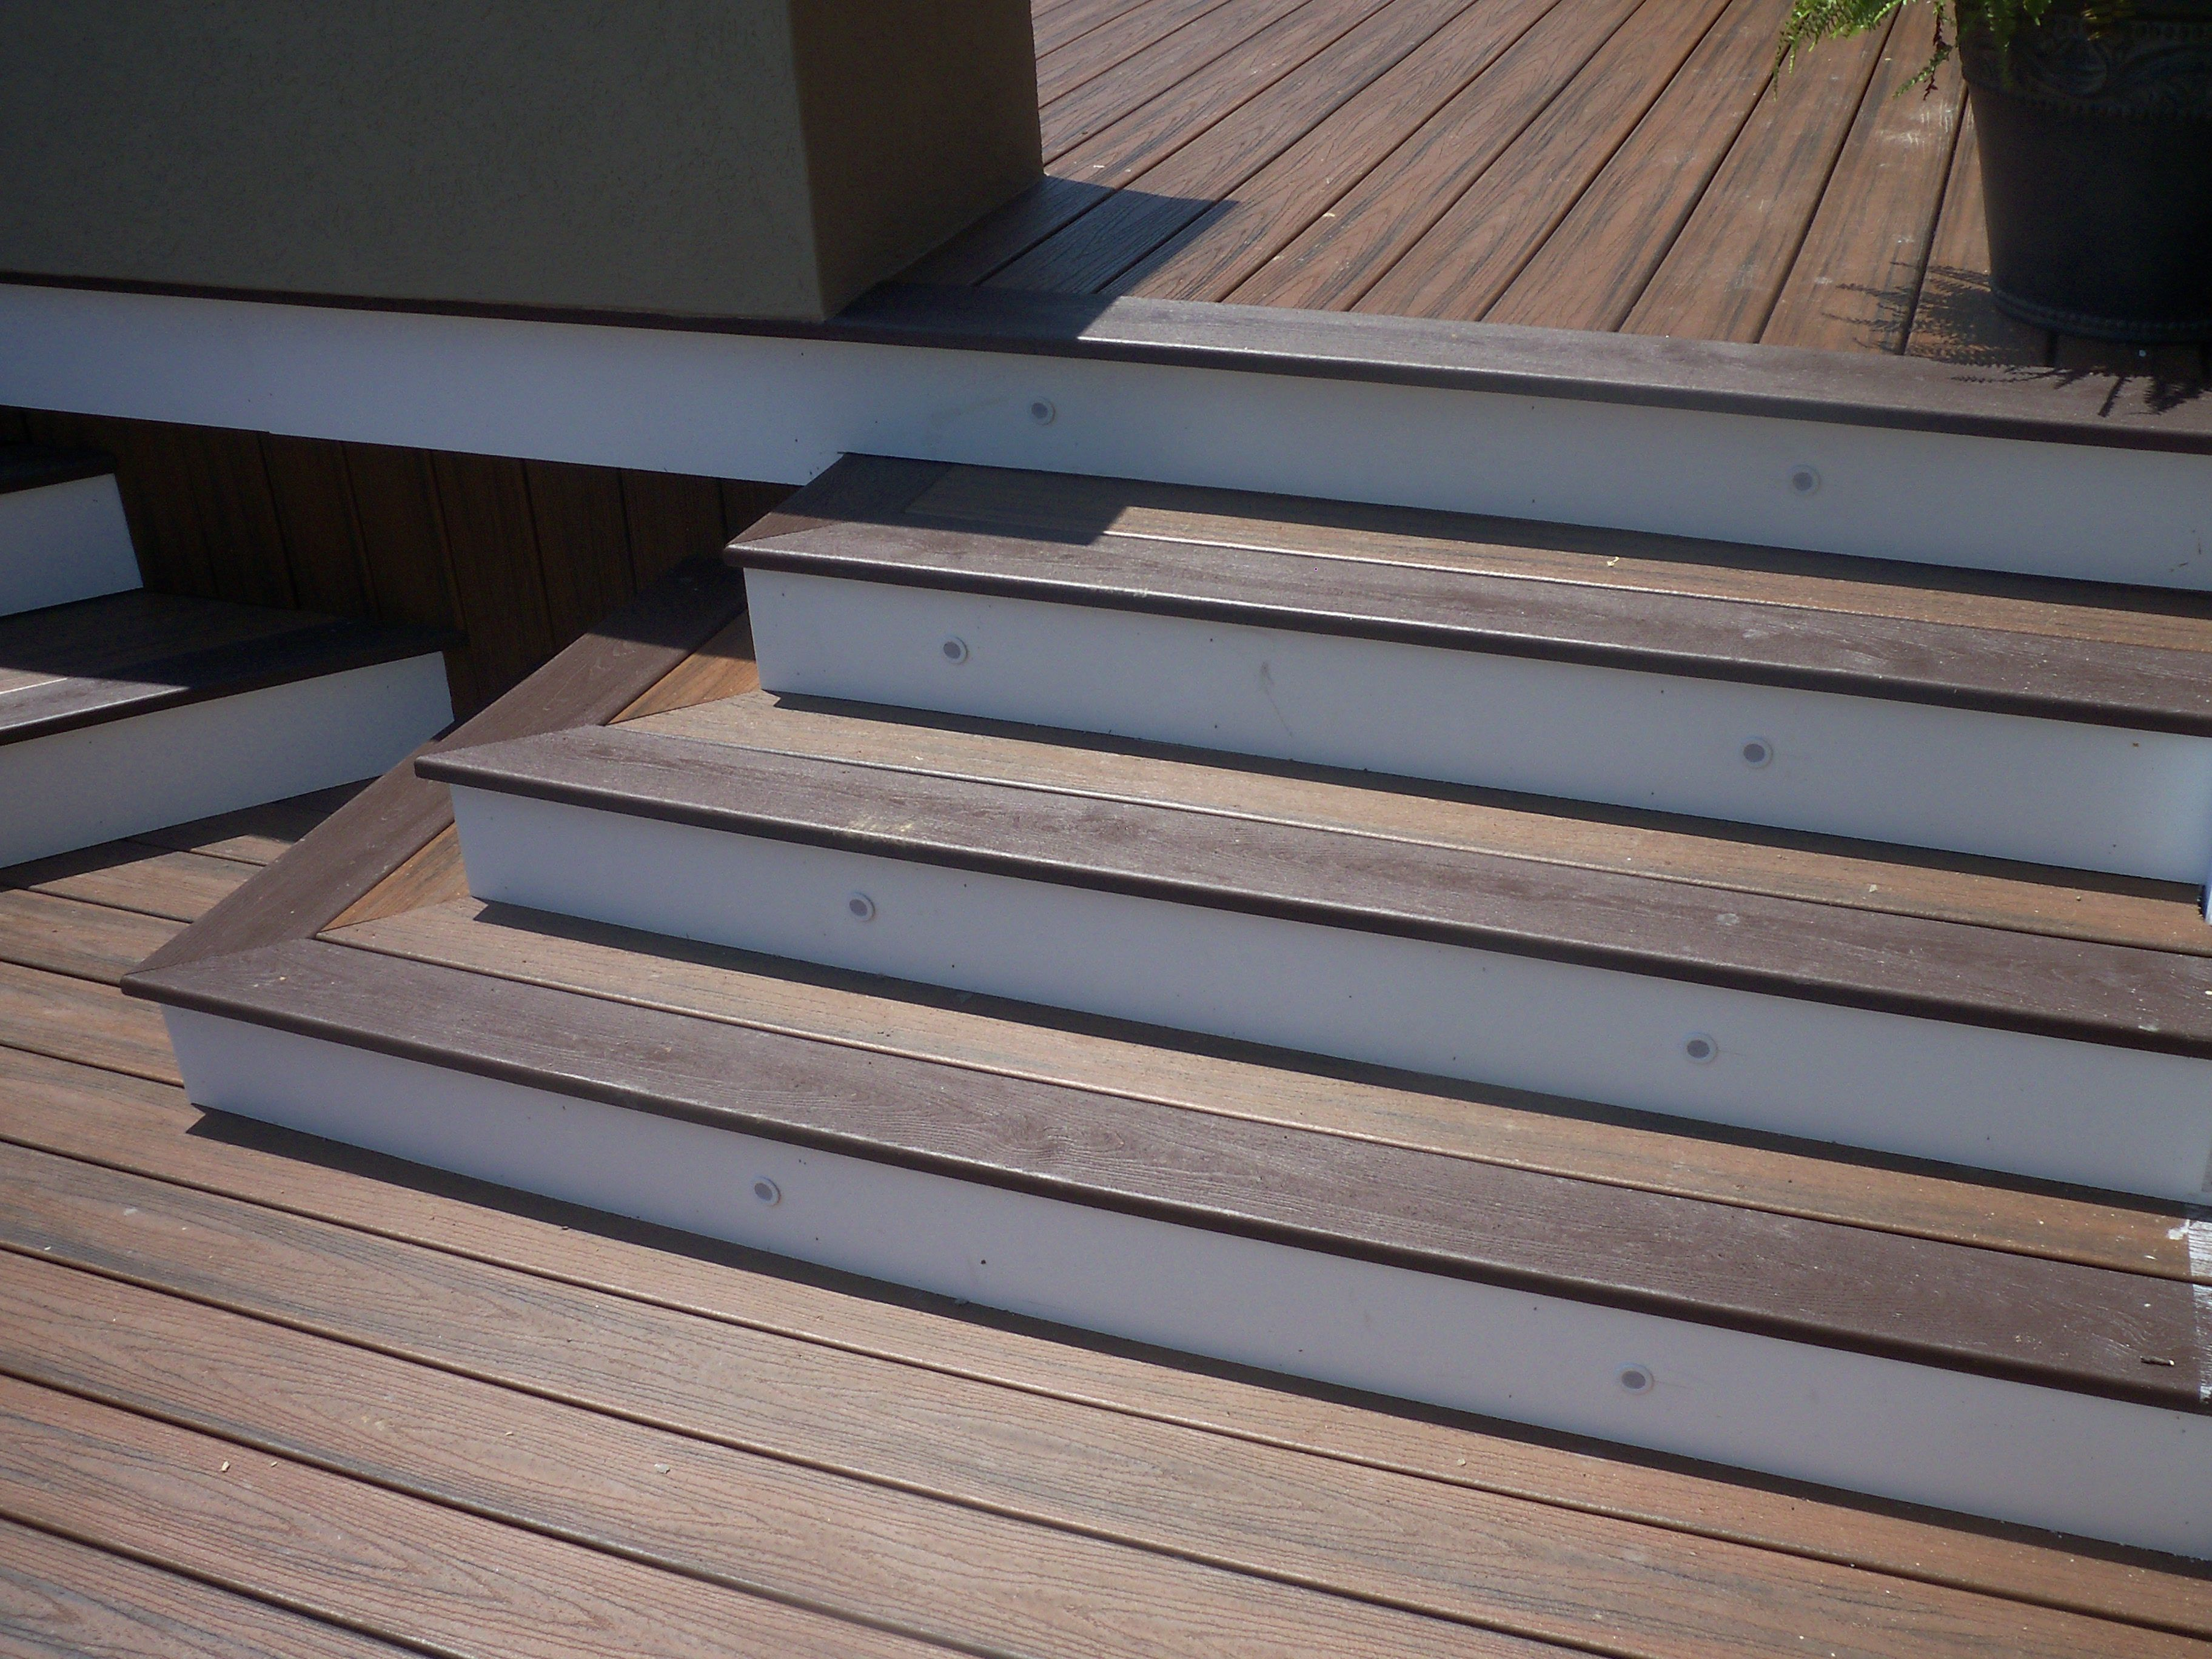 Pyramid Steps With Riser Lights Trex Stair Treads Deck Stairs   Outdoor Composite Stair Treads   Stone   Framed   Outside   Ready Made   Blocking